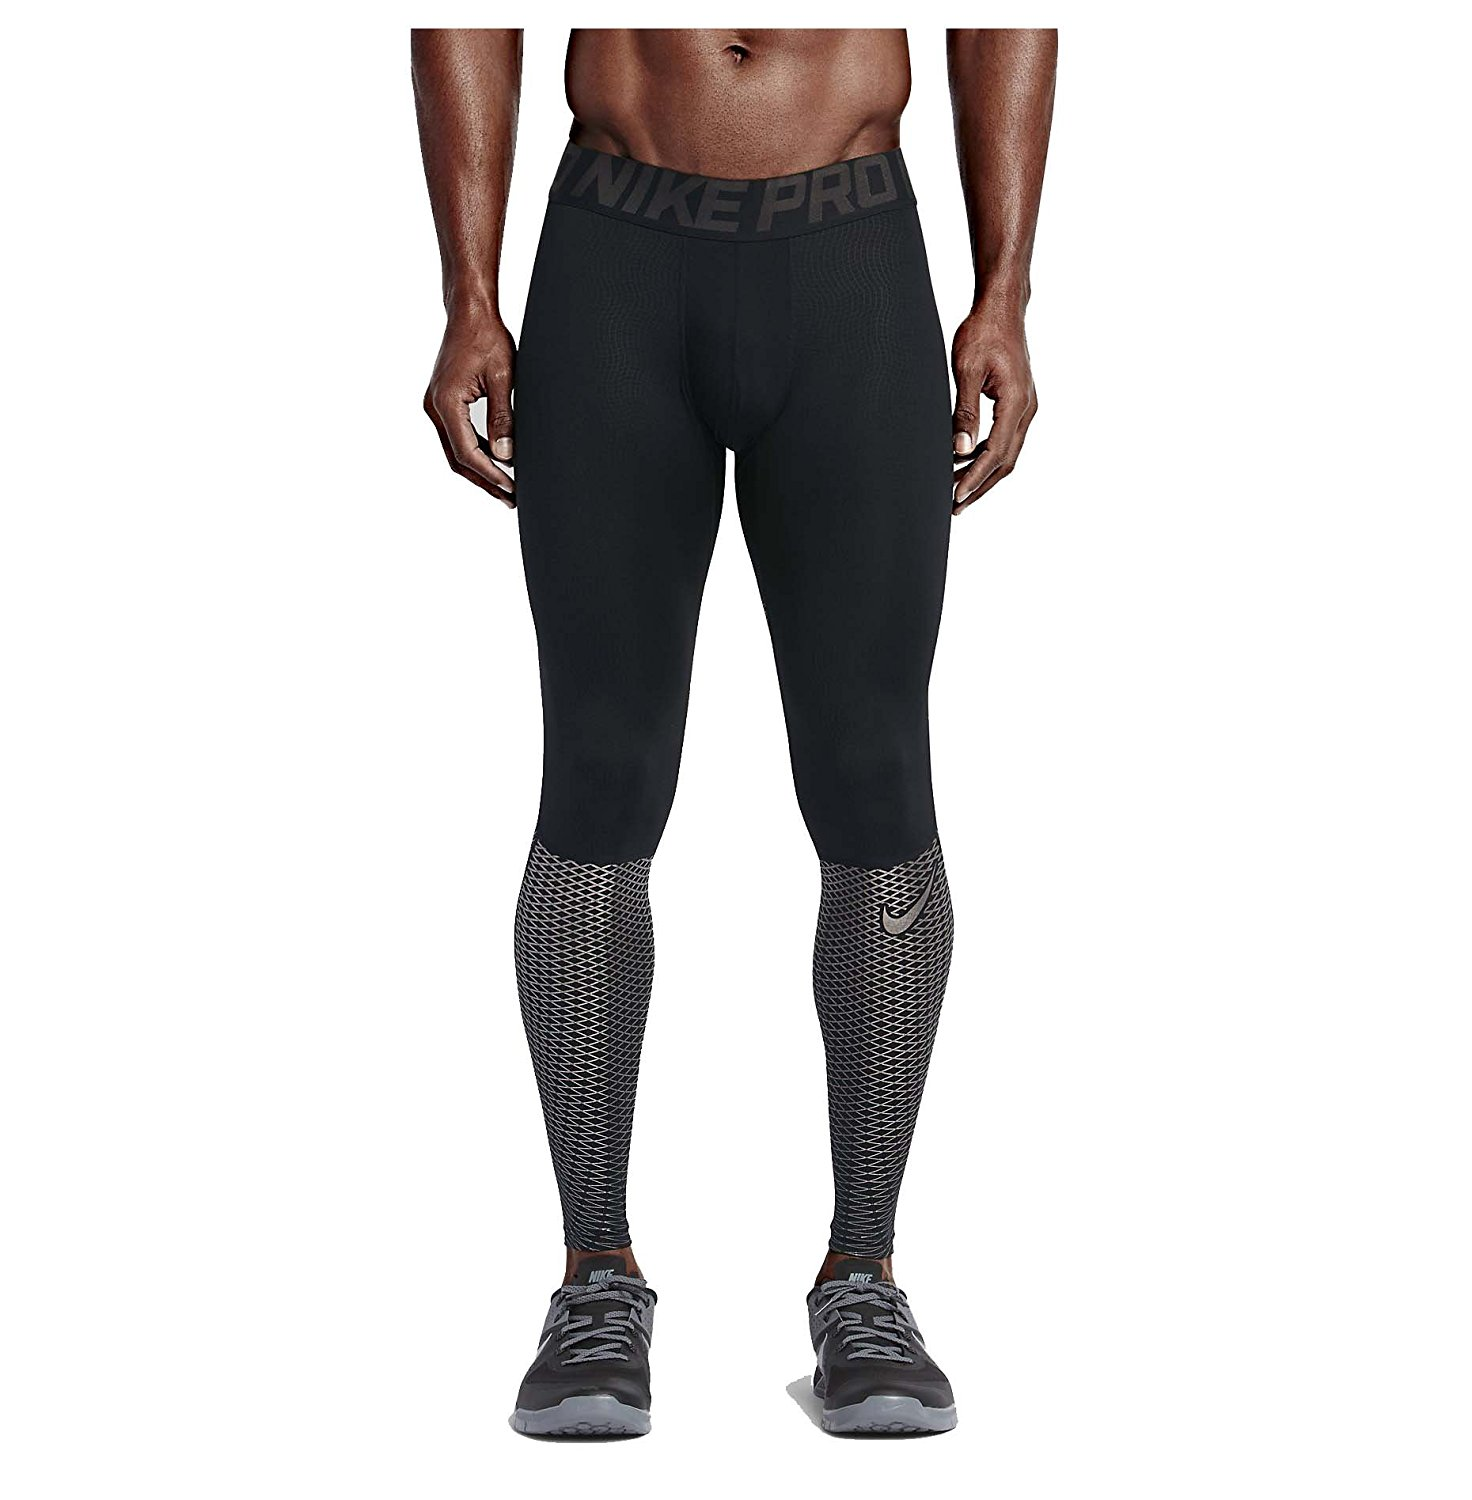 861a857b5f034 Buy Nike Mens Pro Hypercool Max Graphic Tights in Cheap Price on ...